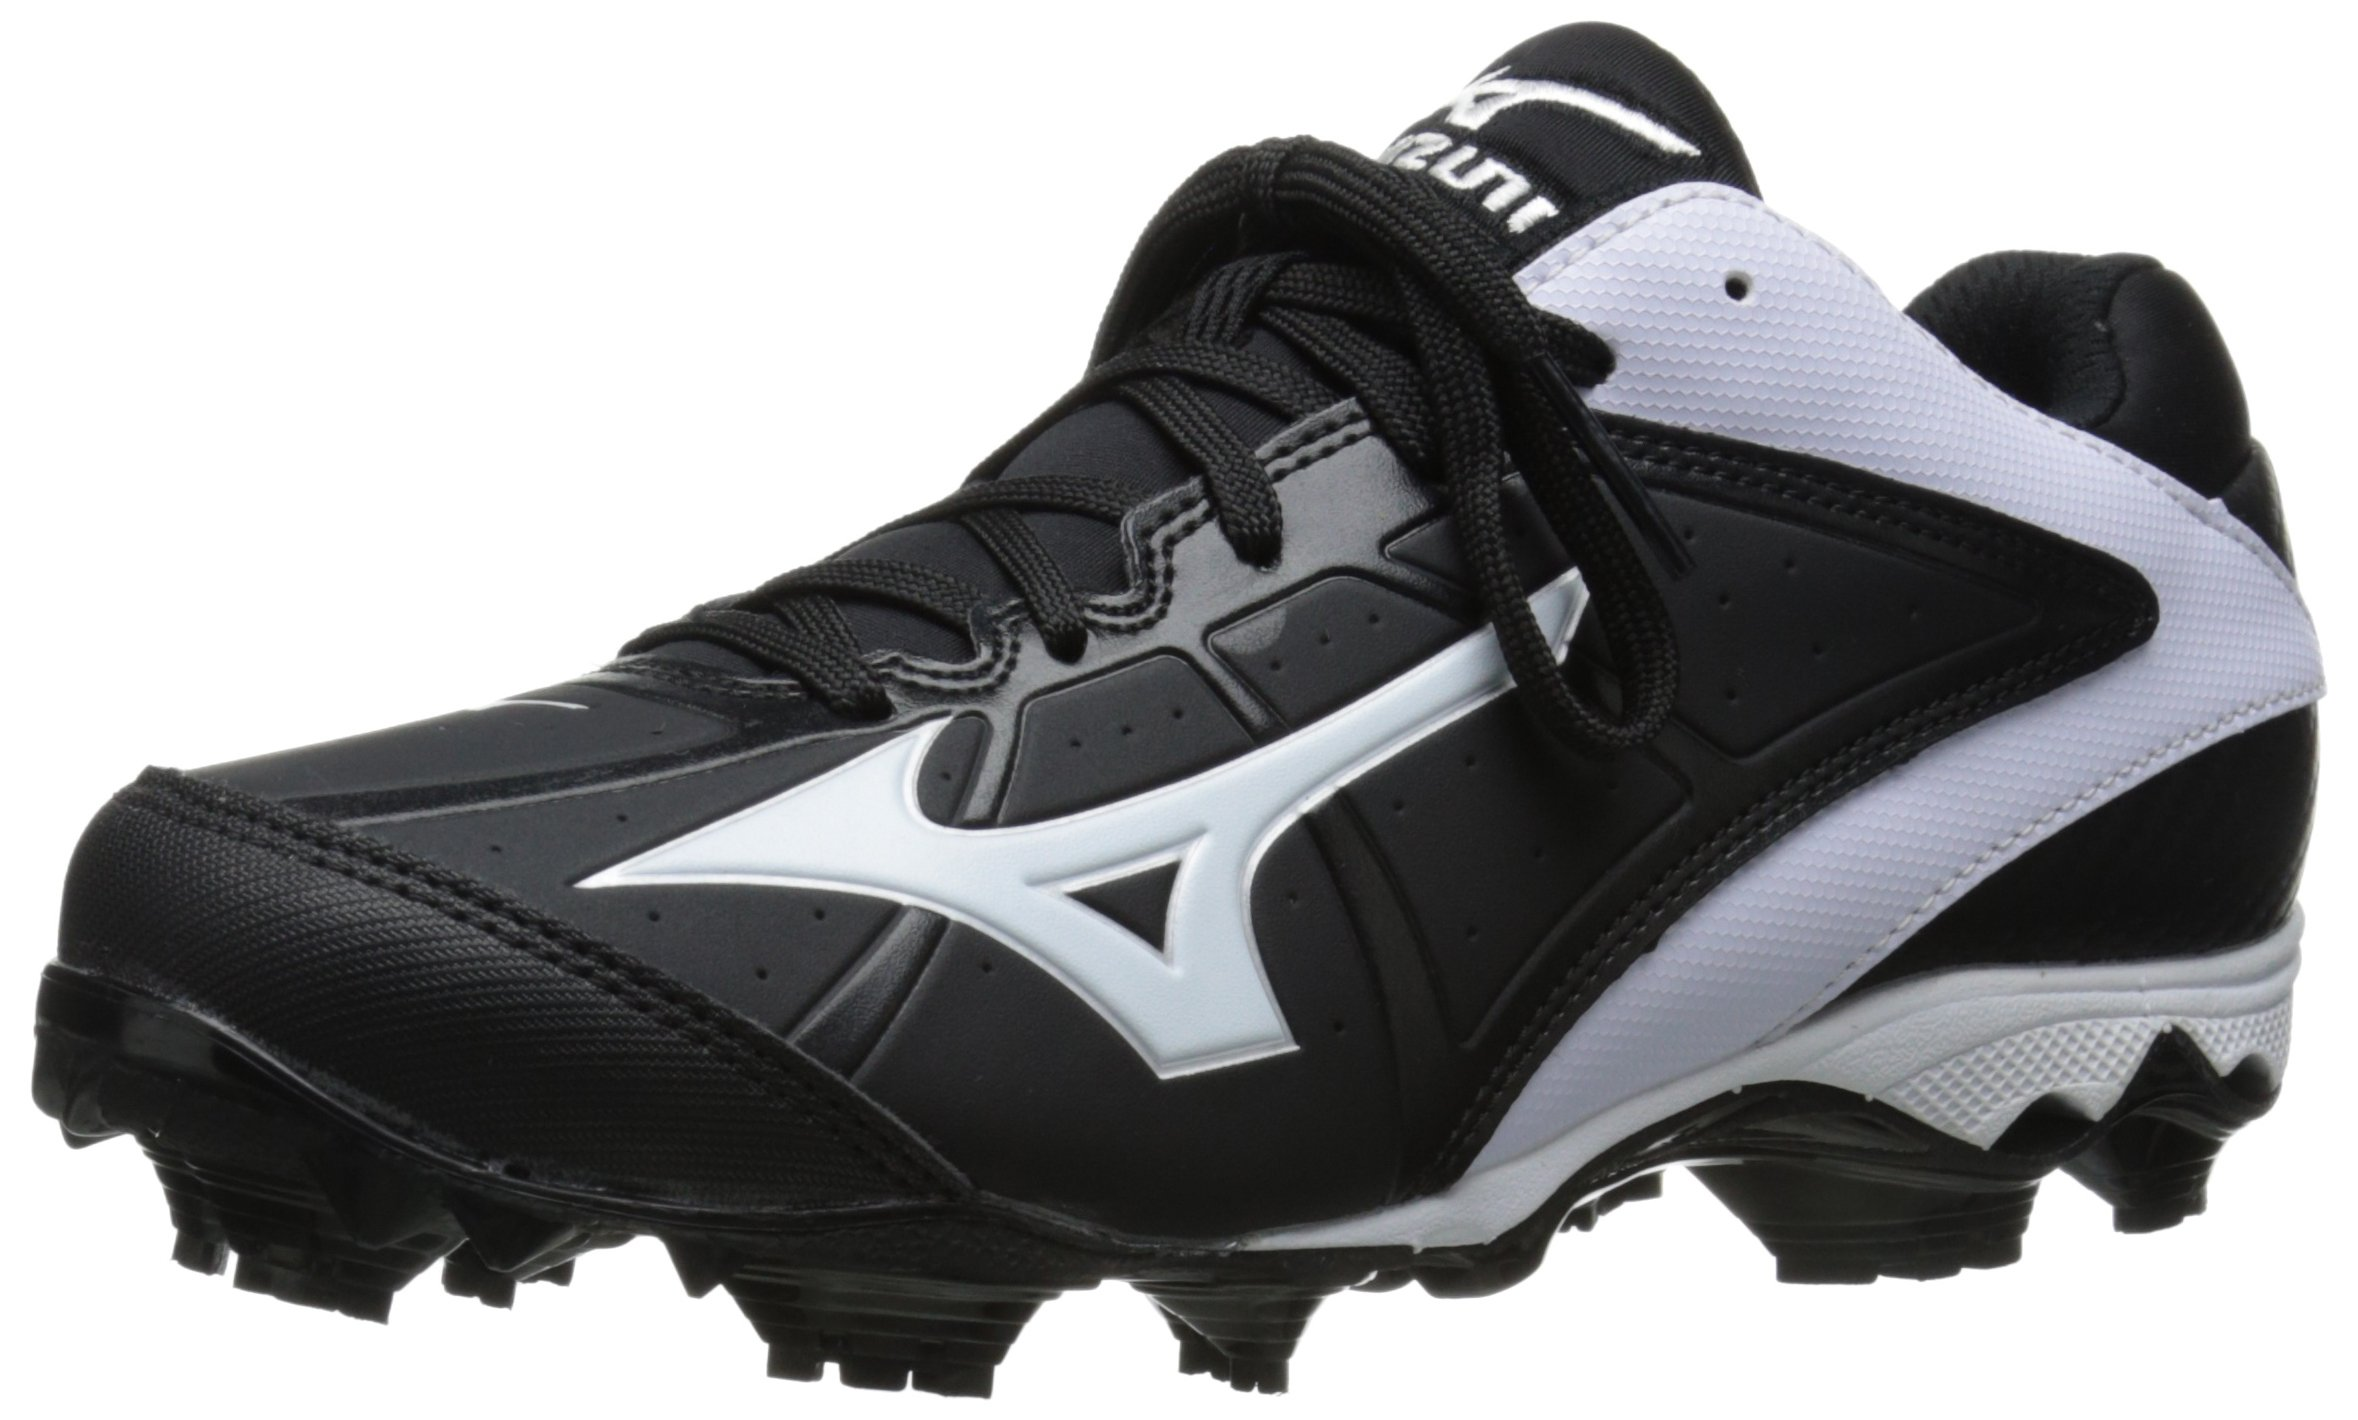 ea1f322849ec Mizuno Women's 9 Spike ADV Finch Elite 2 Fast Pitch Molded Softball Cleat  product image